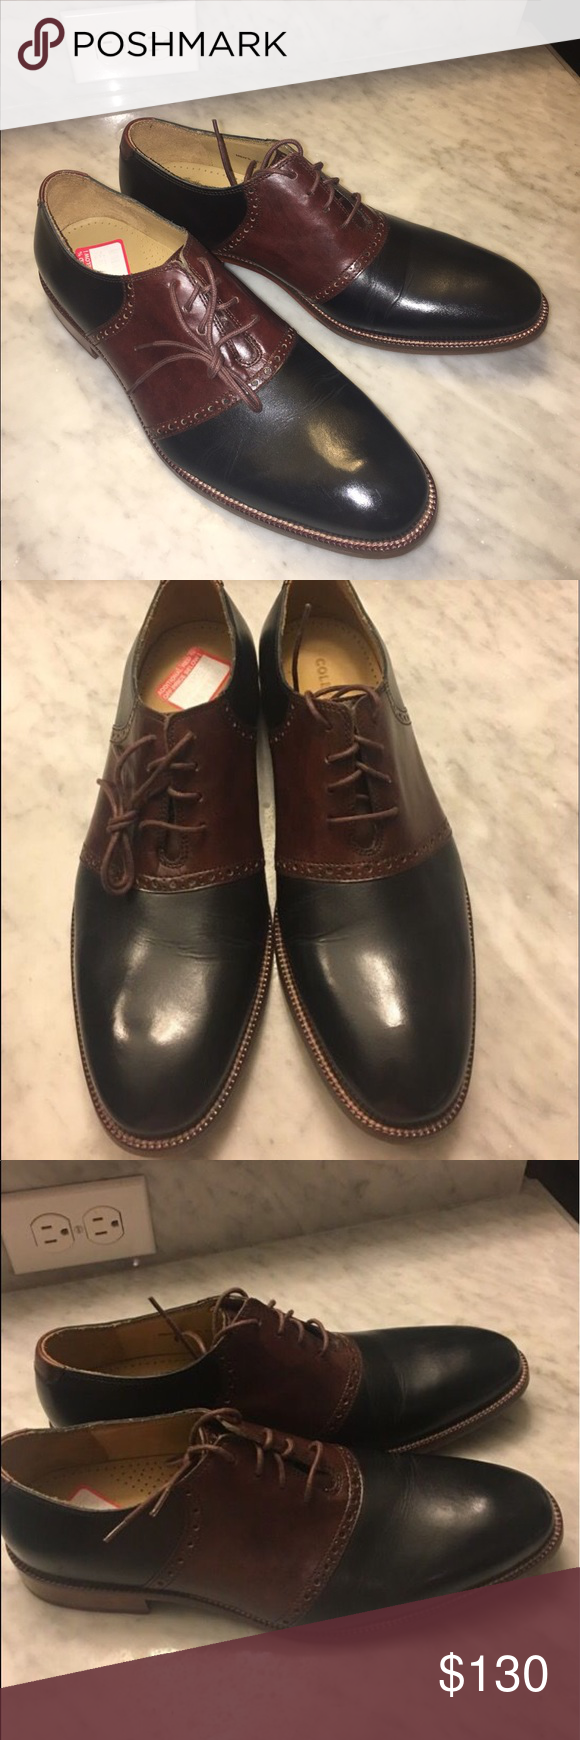 COLE HAAN men's dress shoes Brand new, never been worn